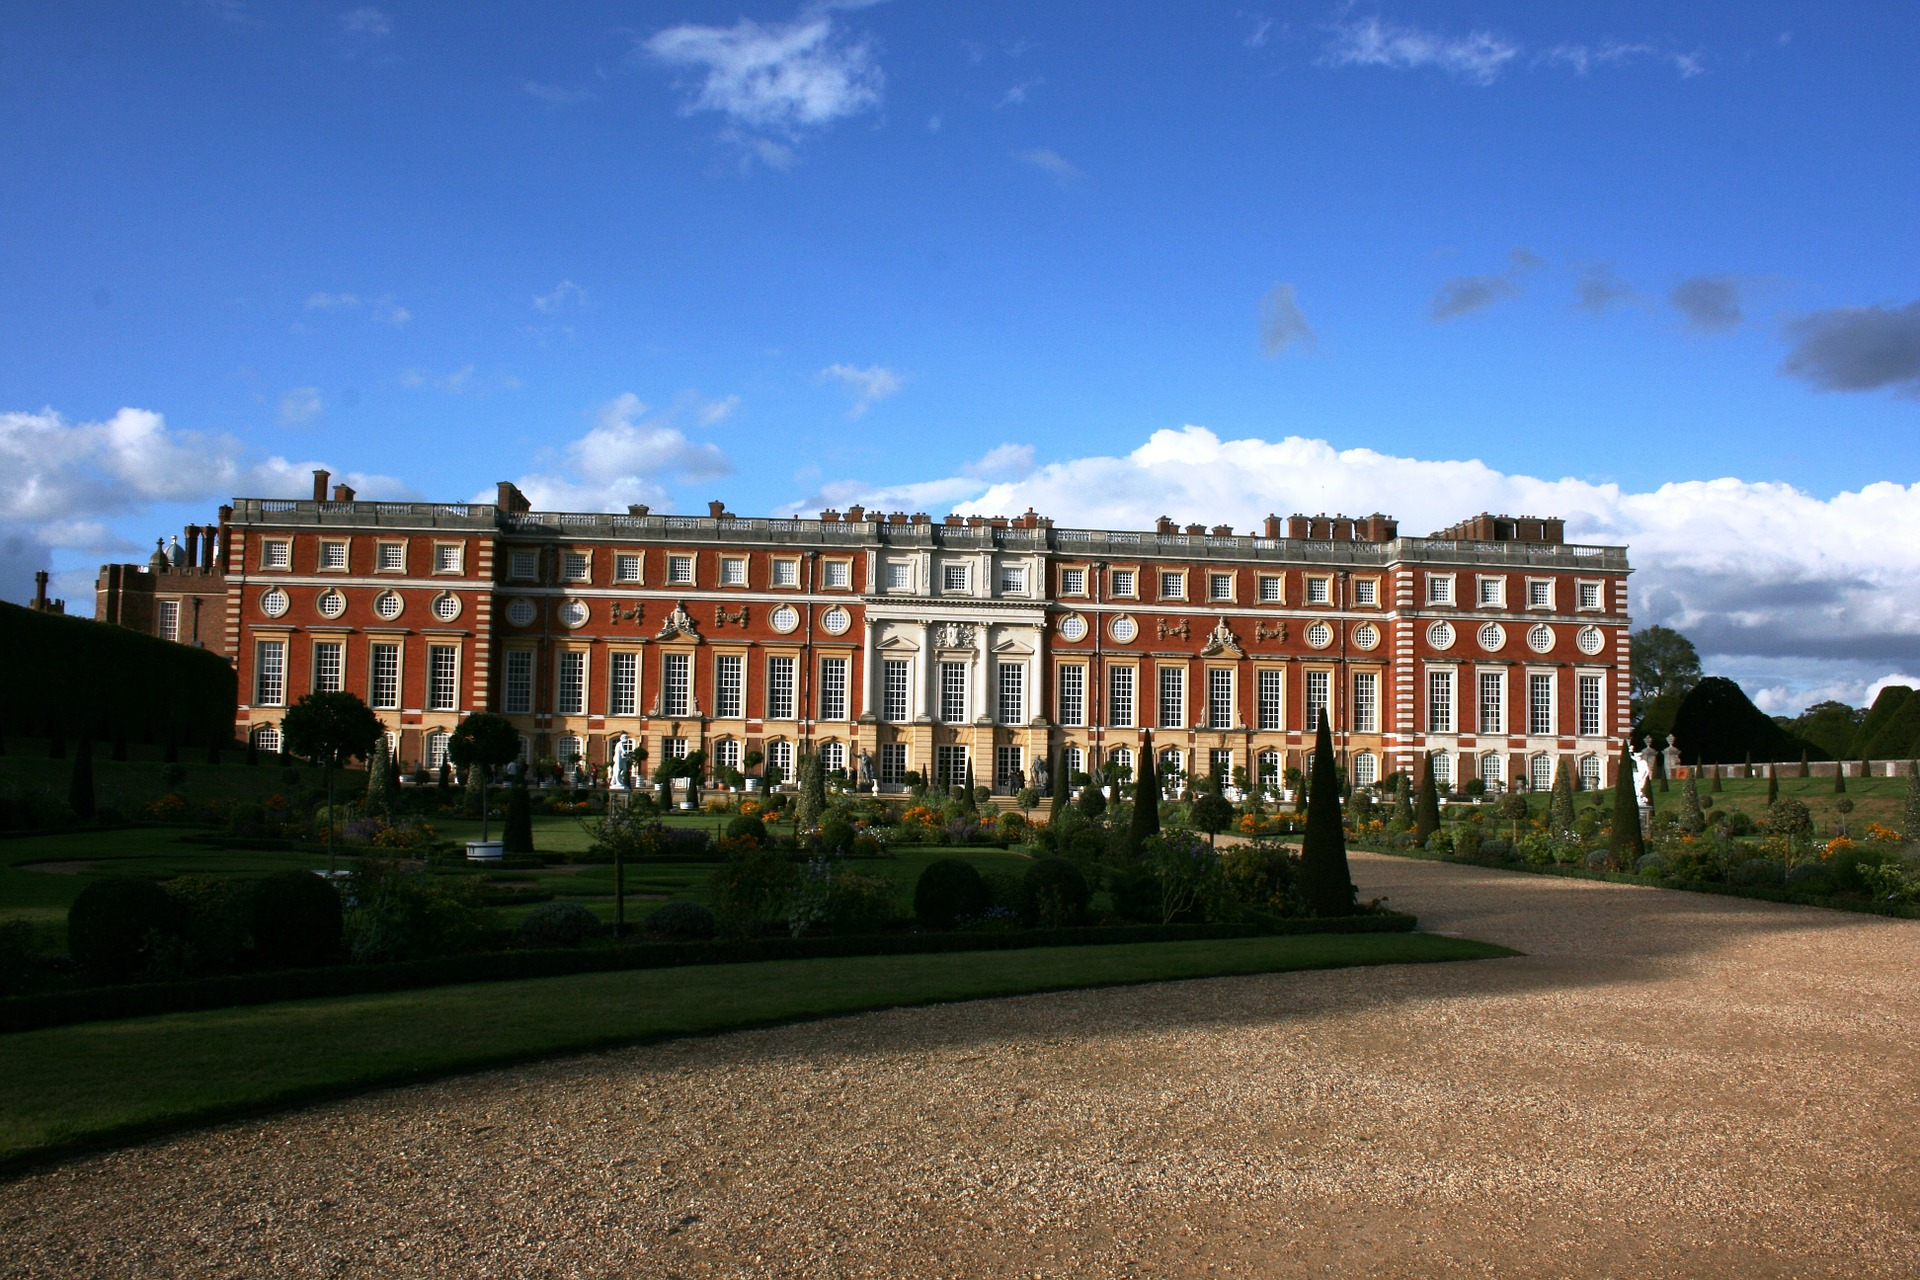 Tour Hampton Court Palace in Richmond which was used for St James's Palace in Bridgerton - home to Queen Charlotte (Photo credit: Pixabay)